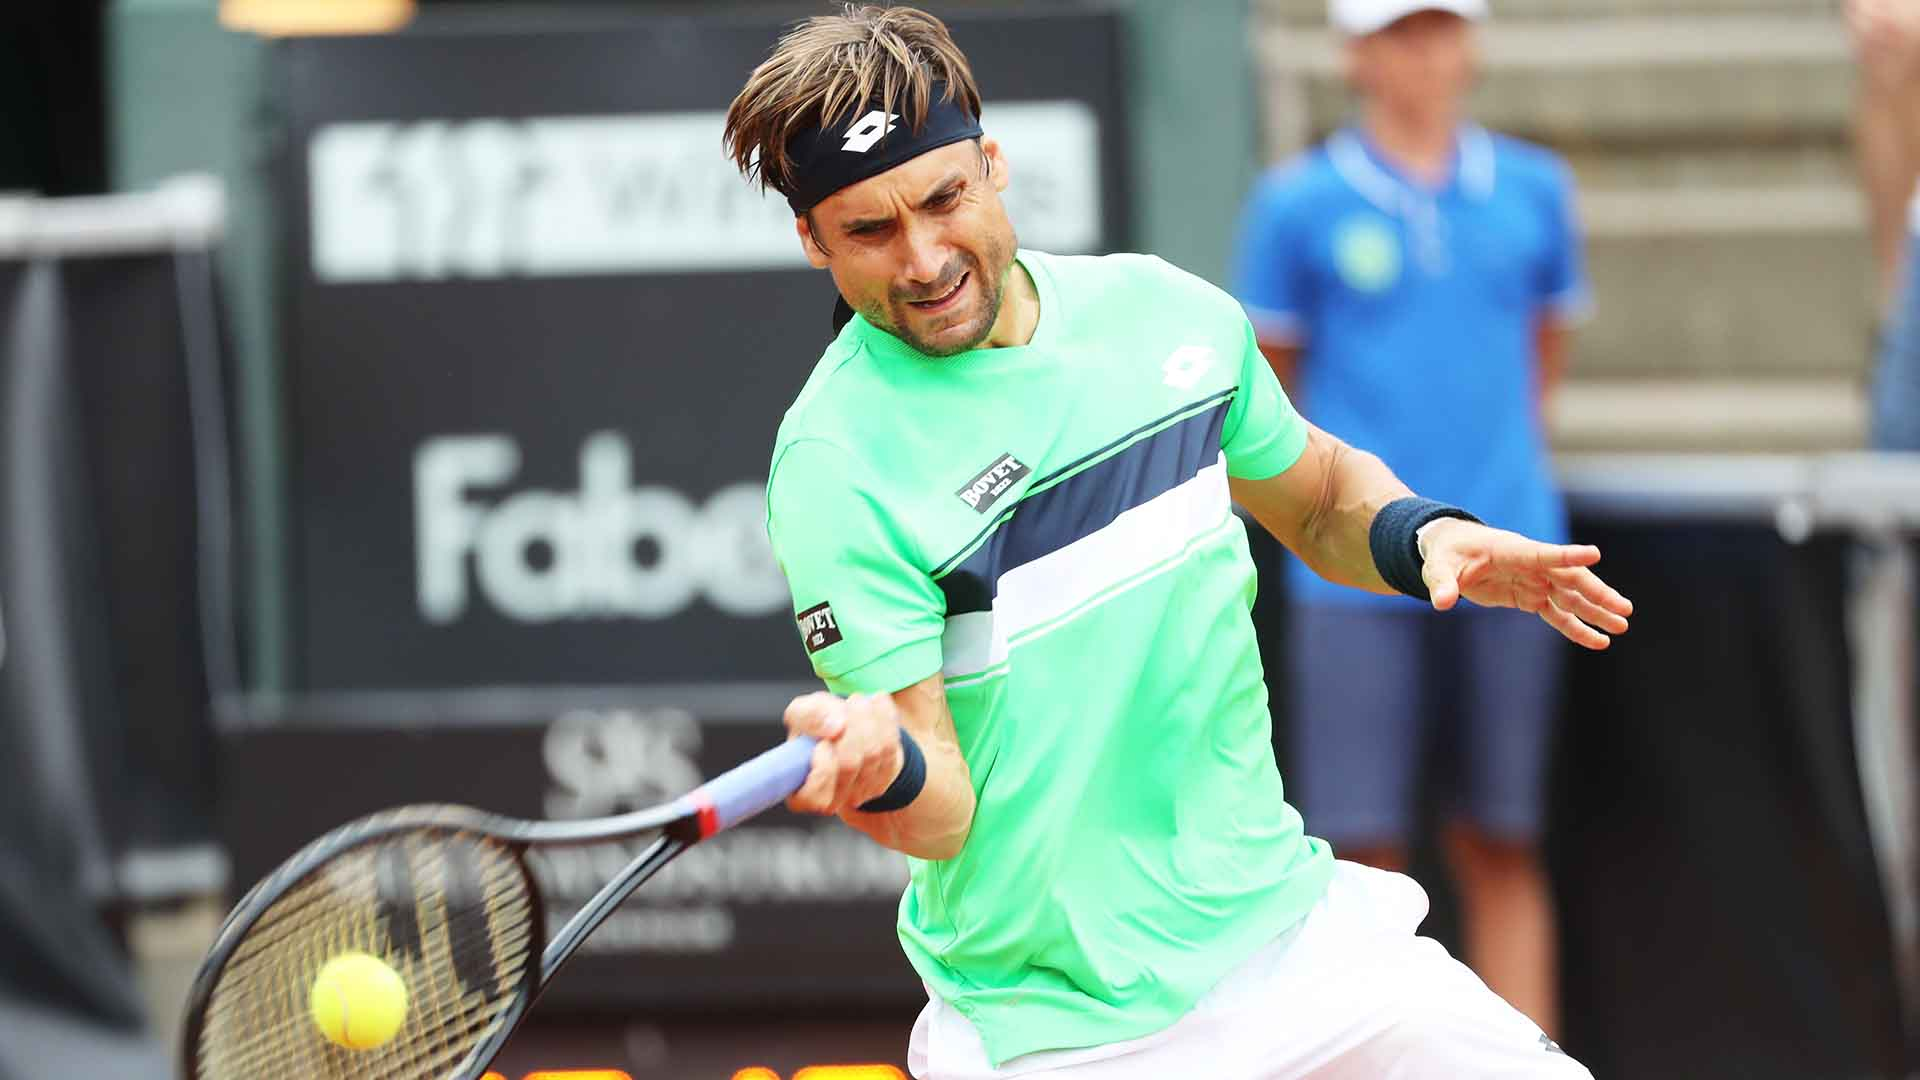 <a href='https://www.atptour.com/en/players/david-ferrer/f401/overview'>David Ferrer</a> owns three Normea Open titles.